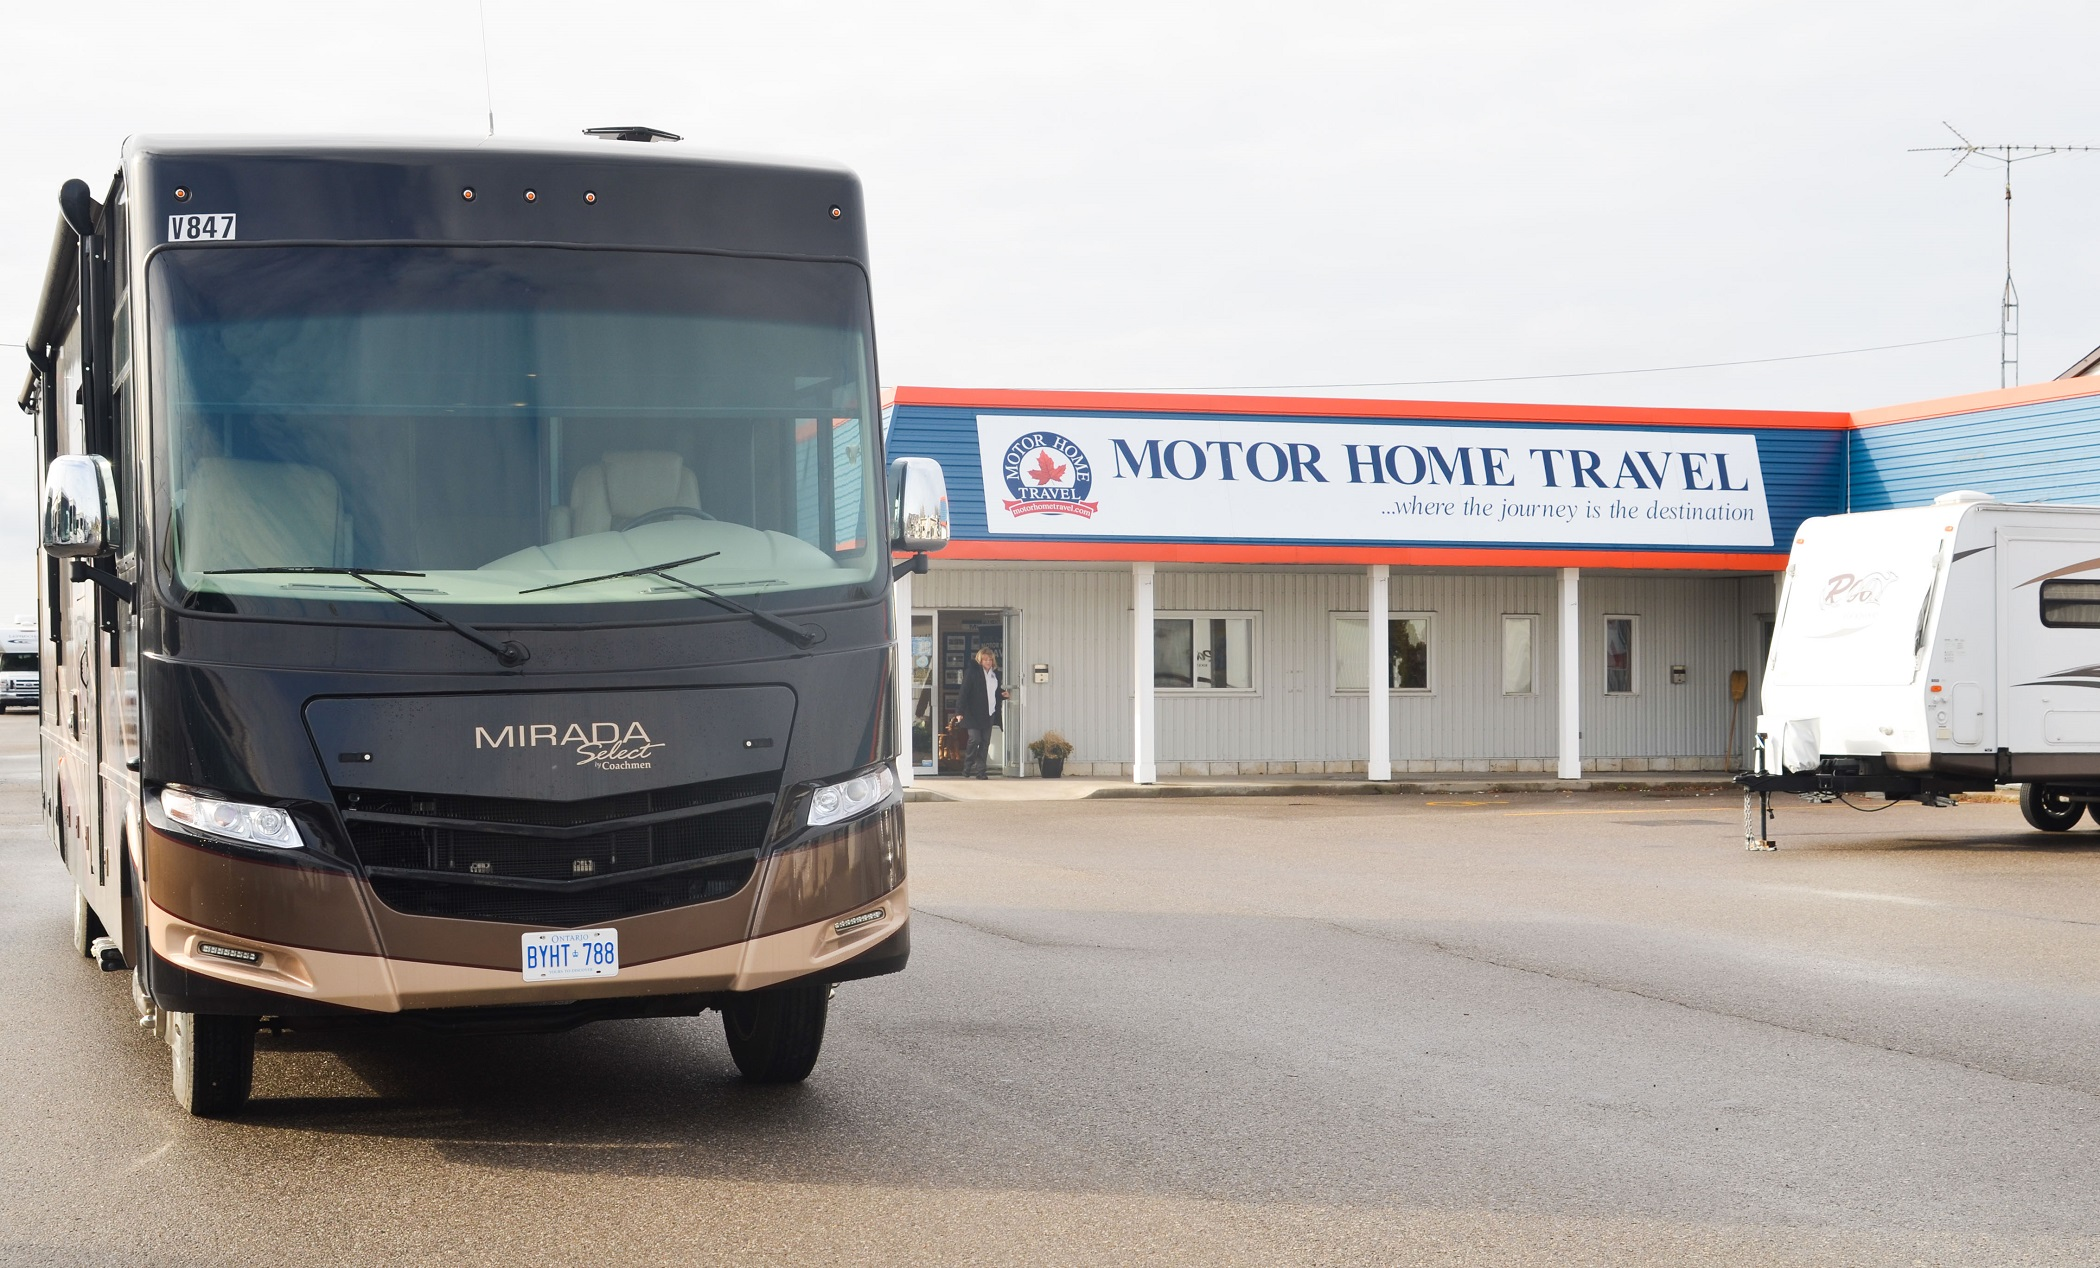 Motor Home Travel Canada Inc MHLUX 37' Class A with Slideouts